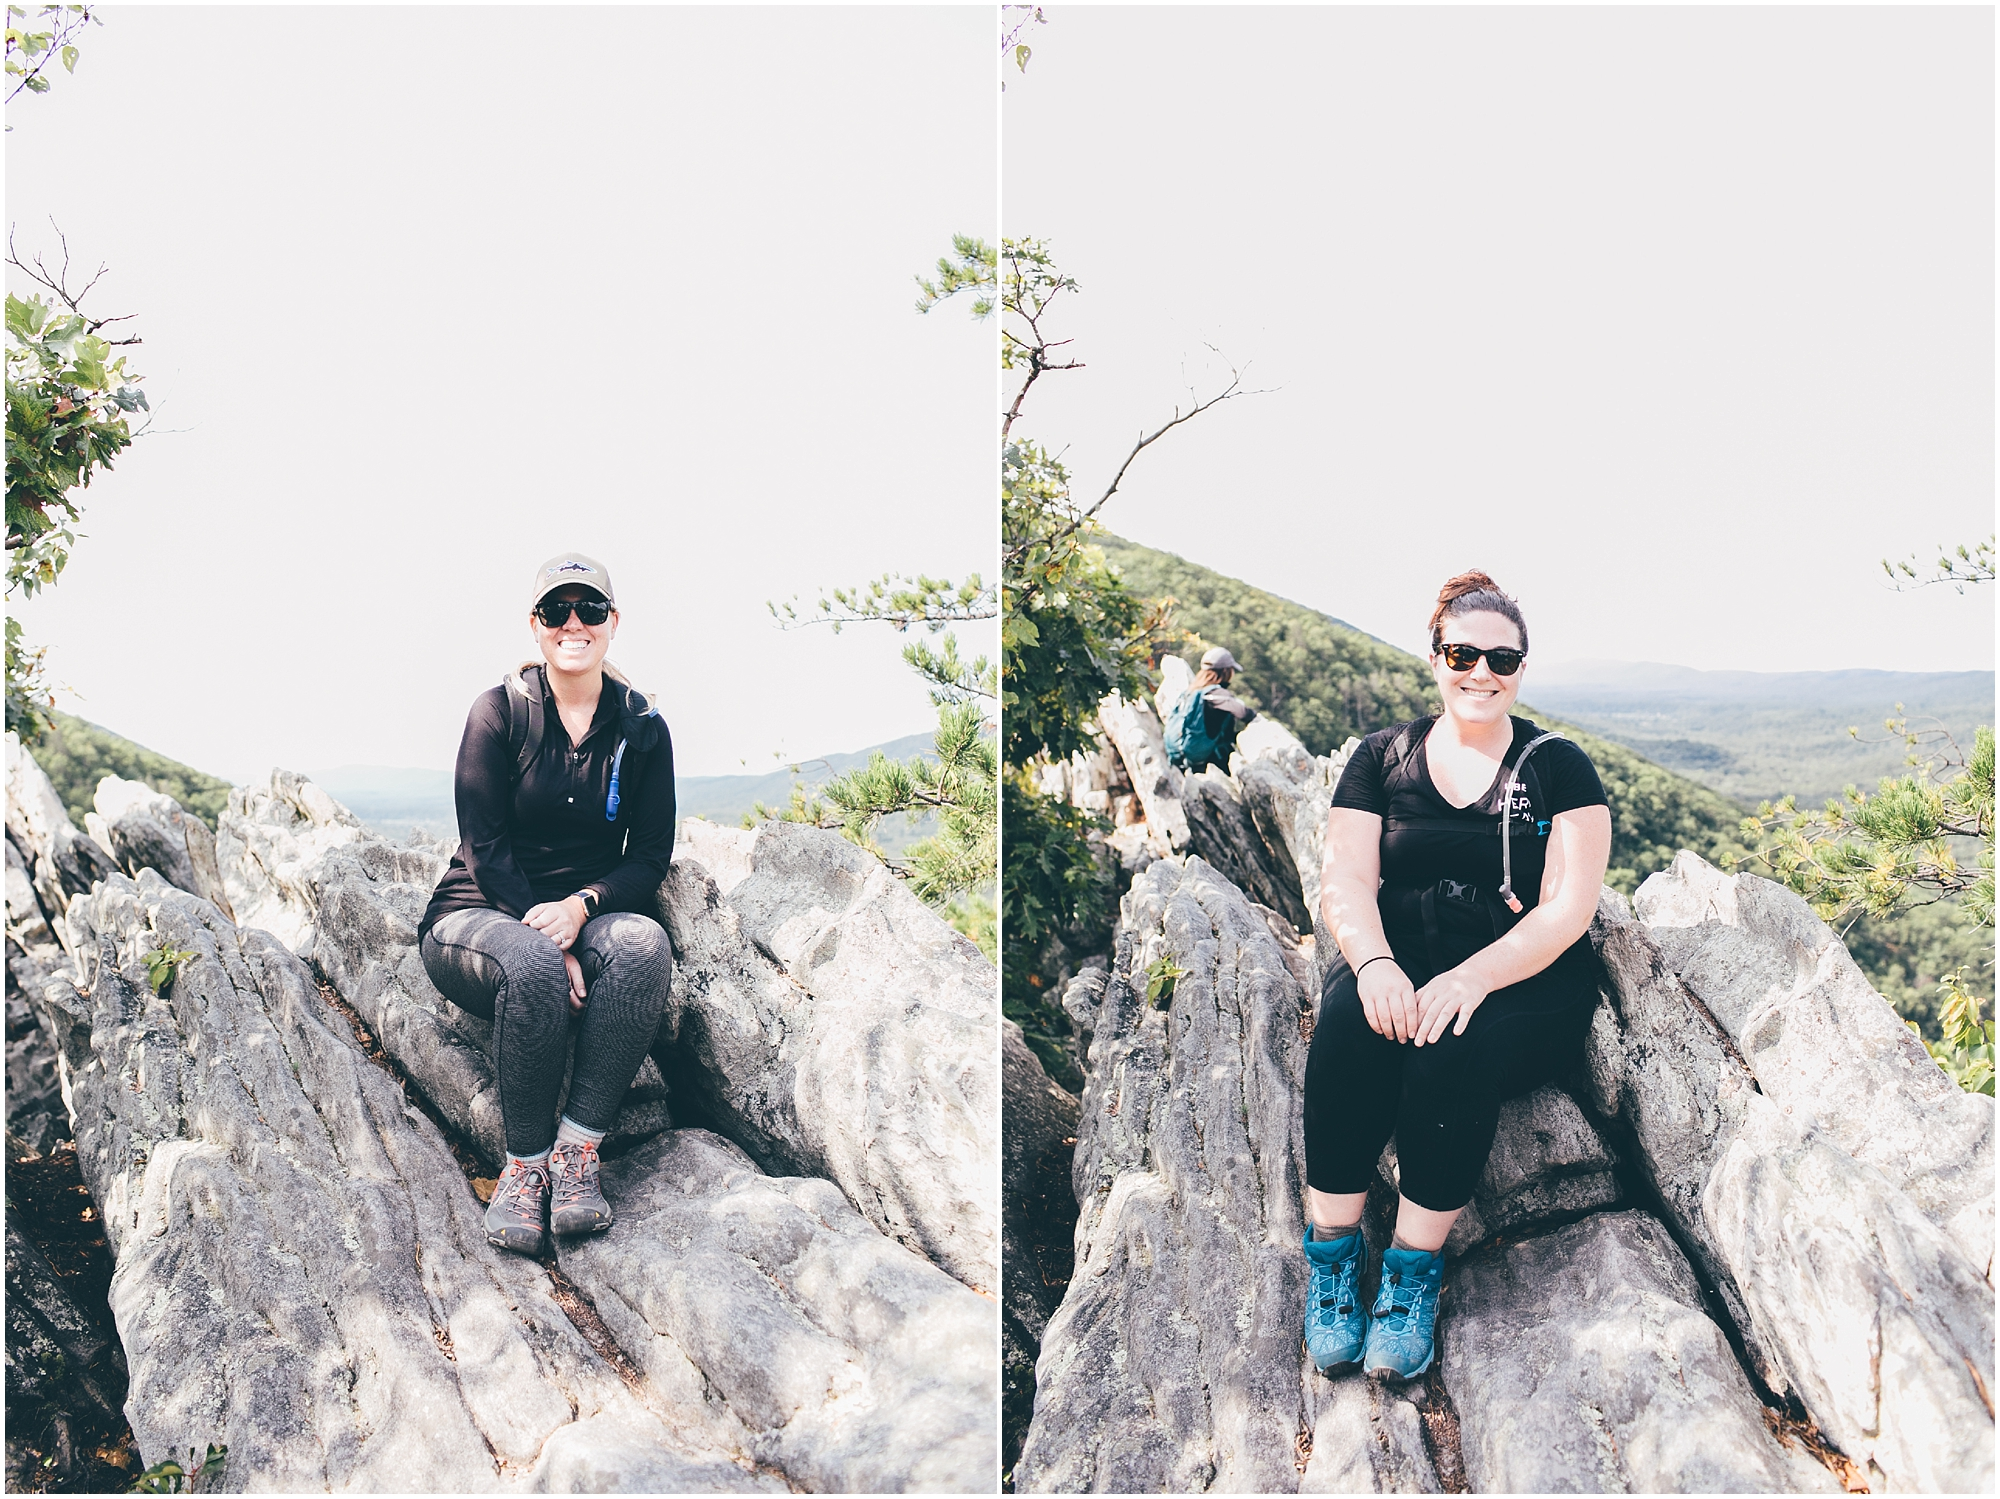 Buzzard Rock North Trail, Blue Ridge Mountains, Hiking, Her Hike Collective, Women's Hiking group